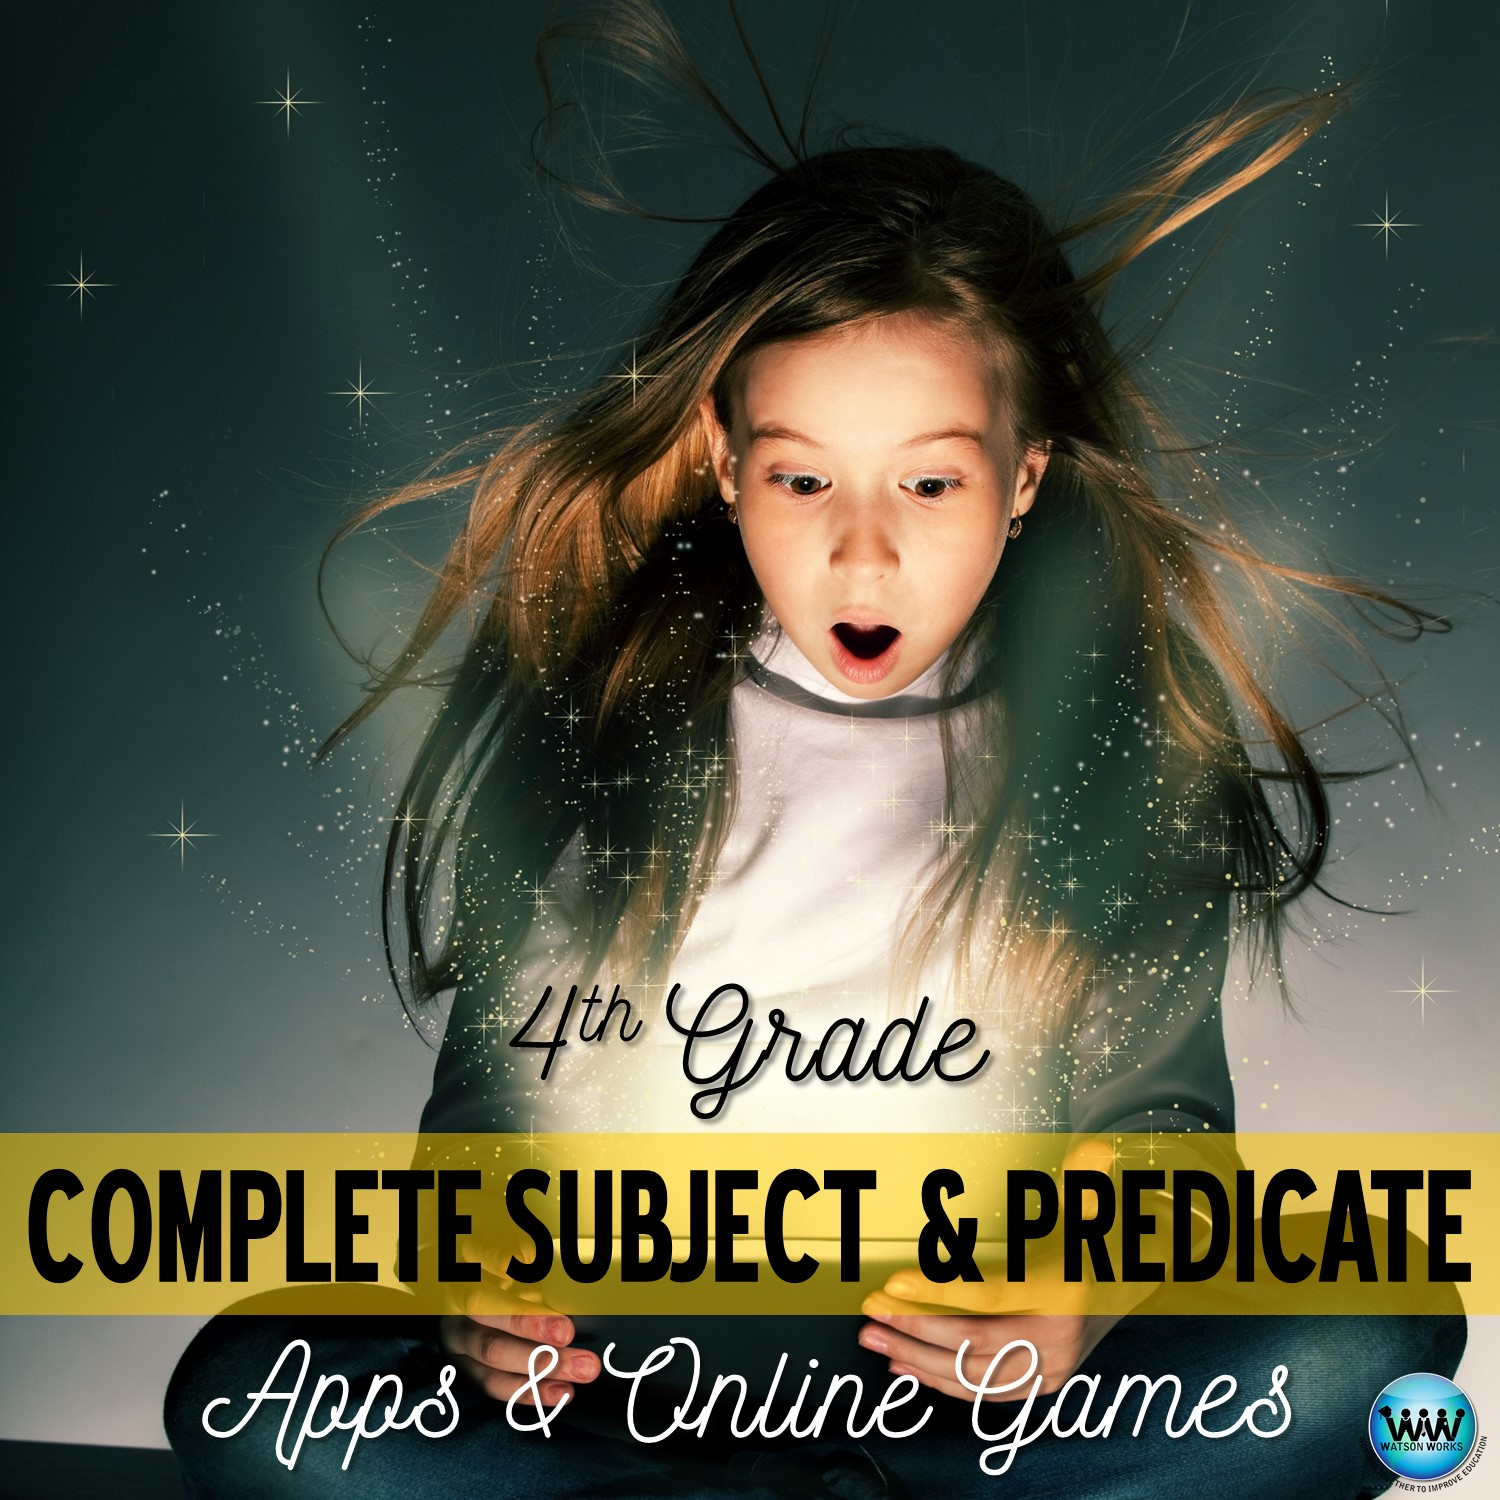 Watson Works 4th Grade Complete Subject Amp Predicate Apps Amp Online Games